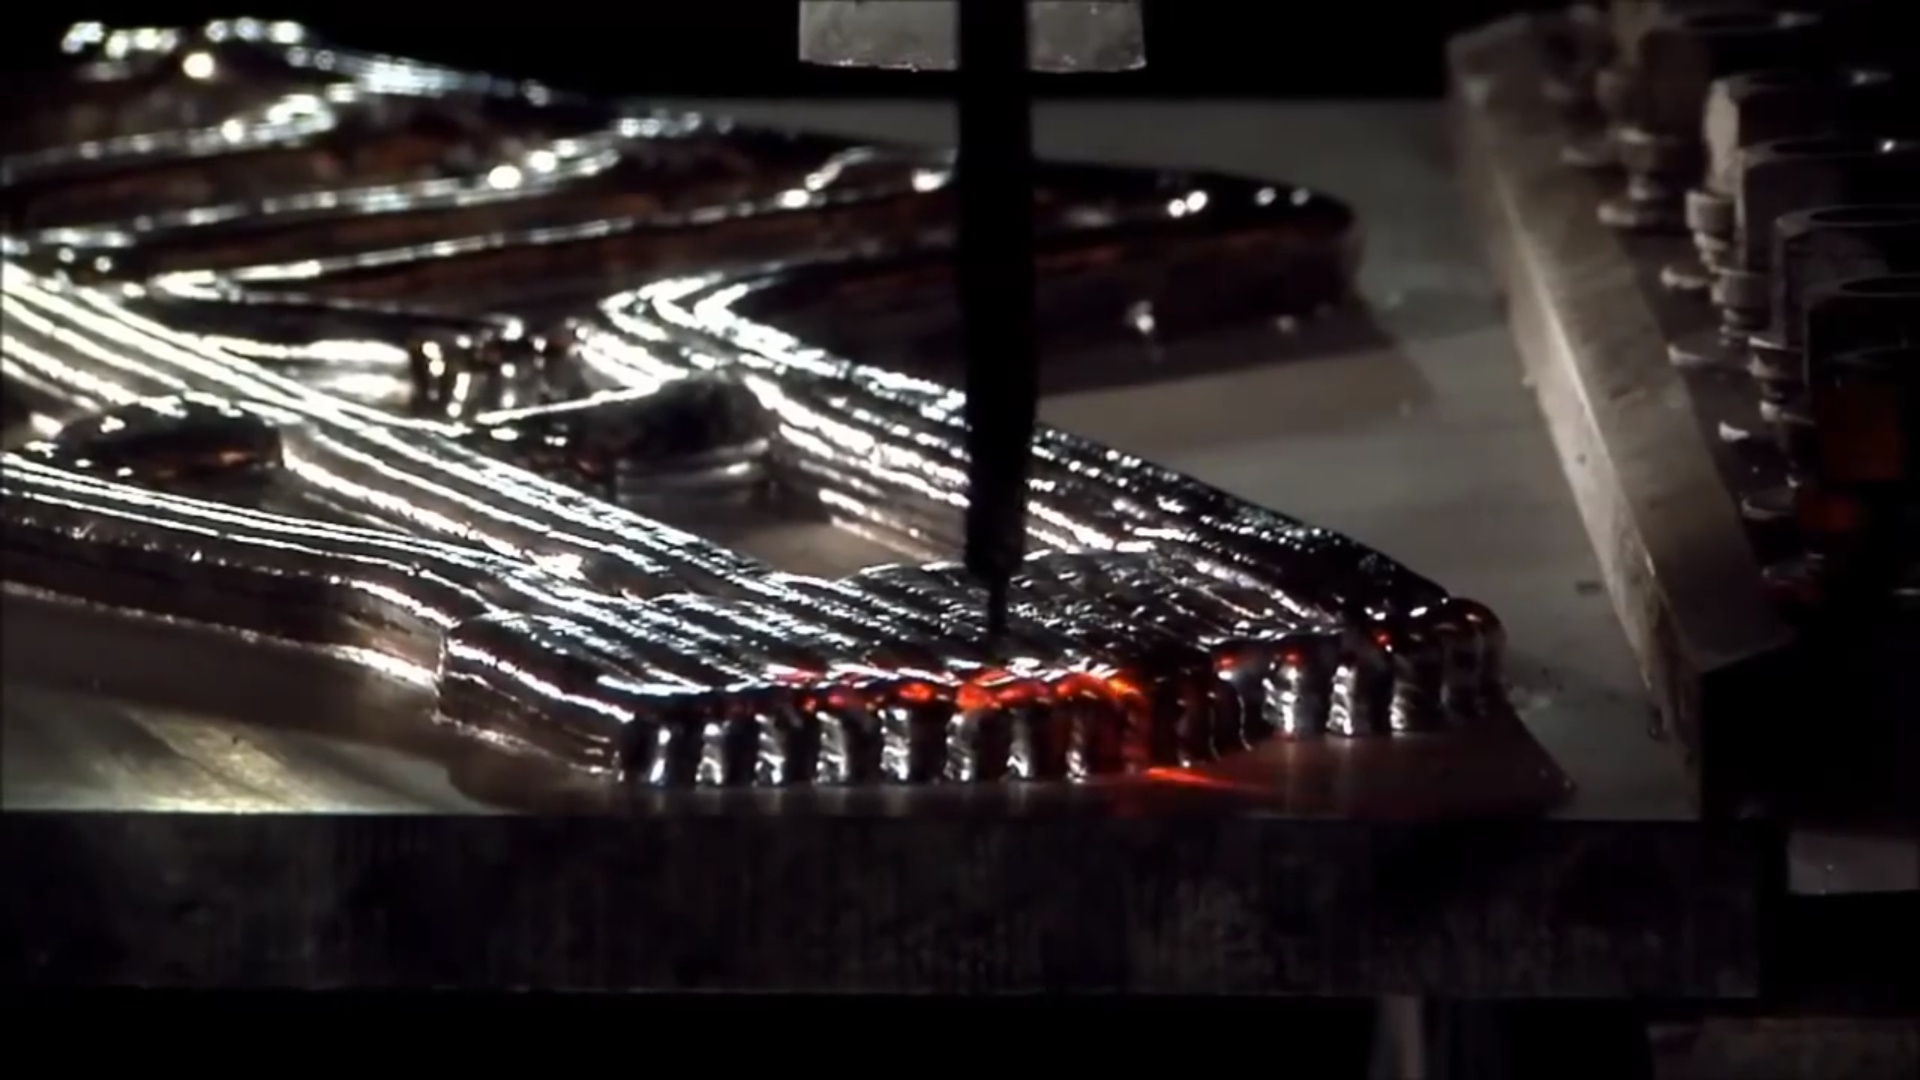 Laser scanning of an EBAM 3D printed metal part. Screenshot via Sciaky Inc. on YouTube